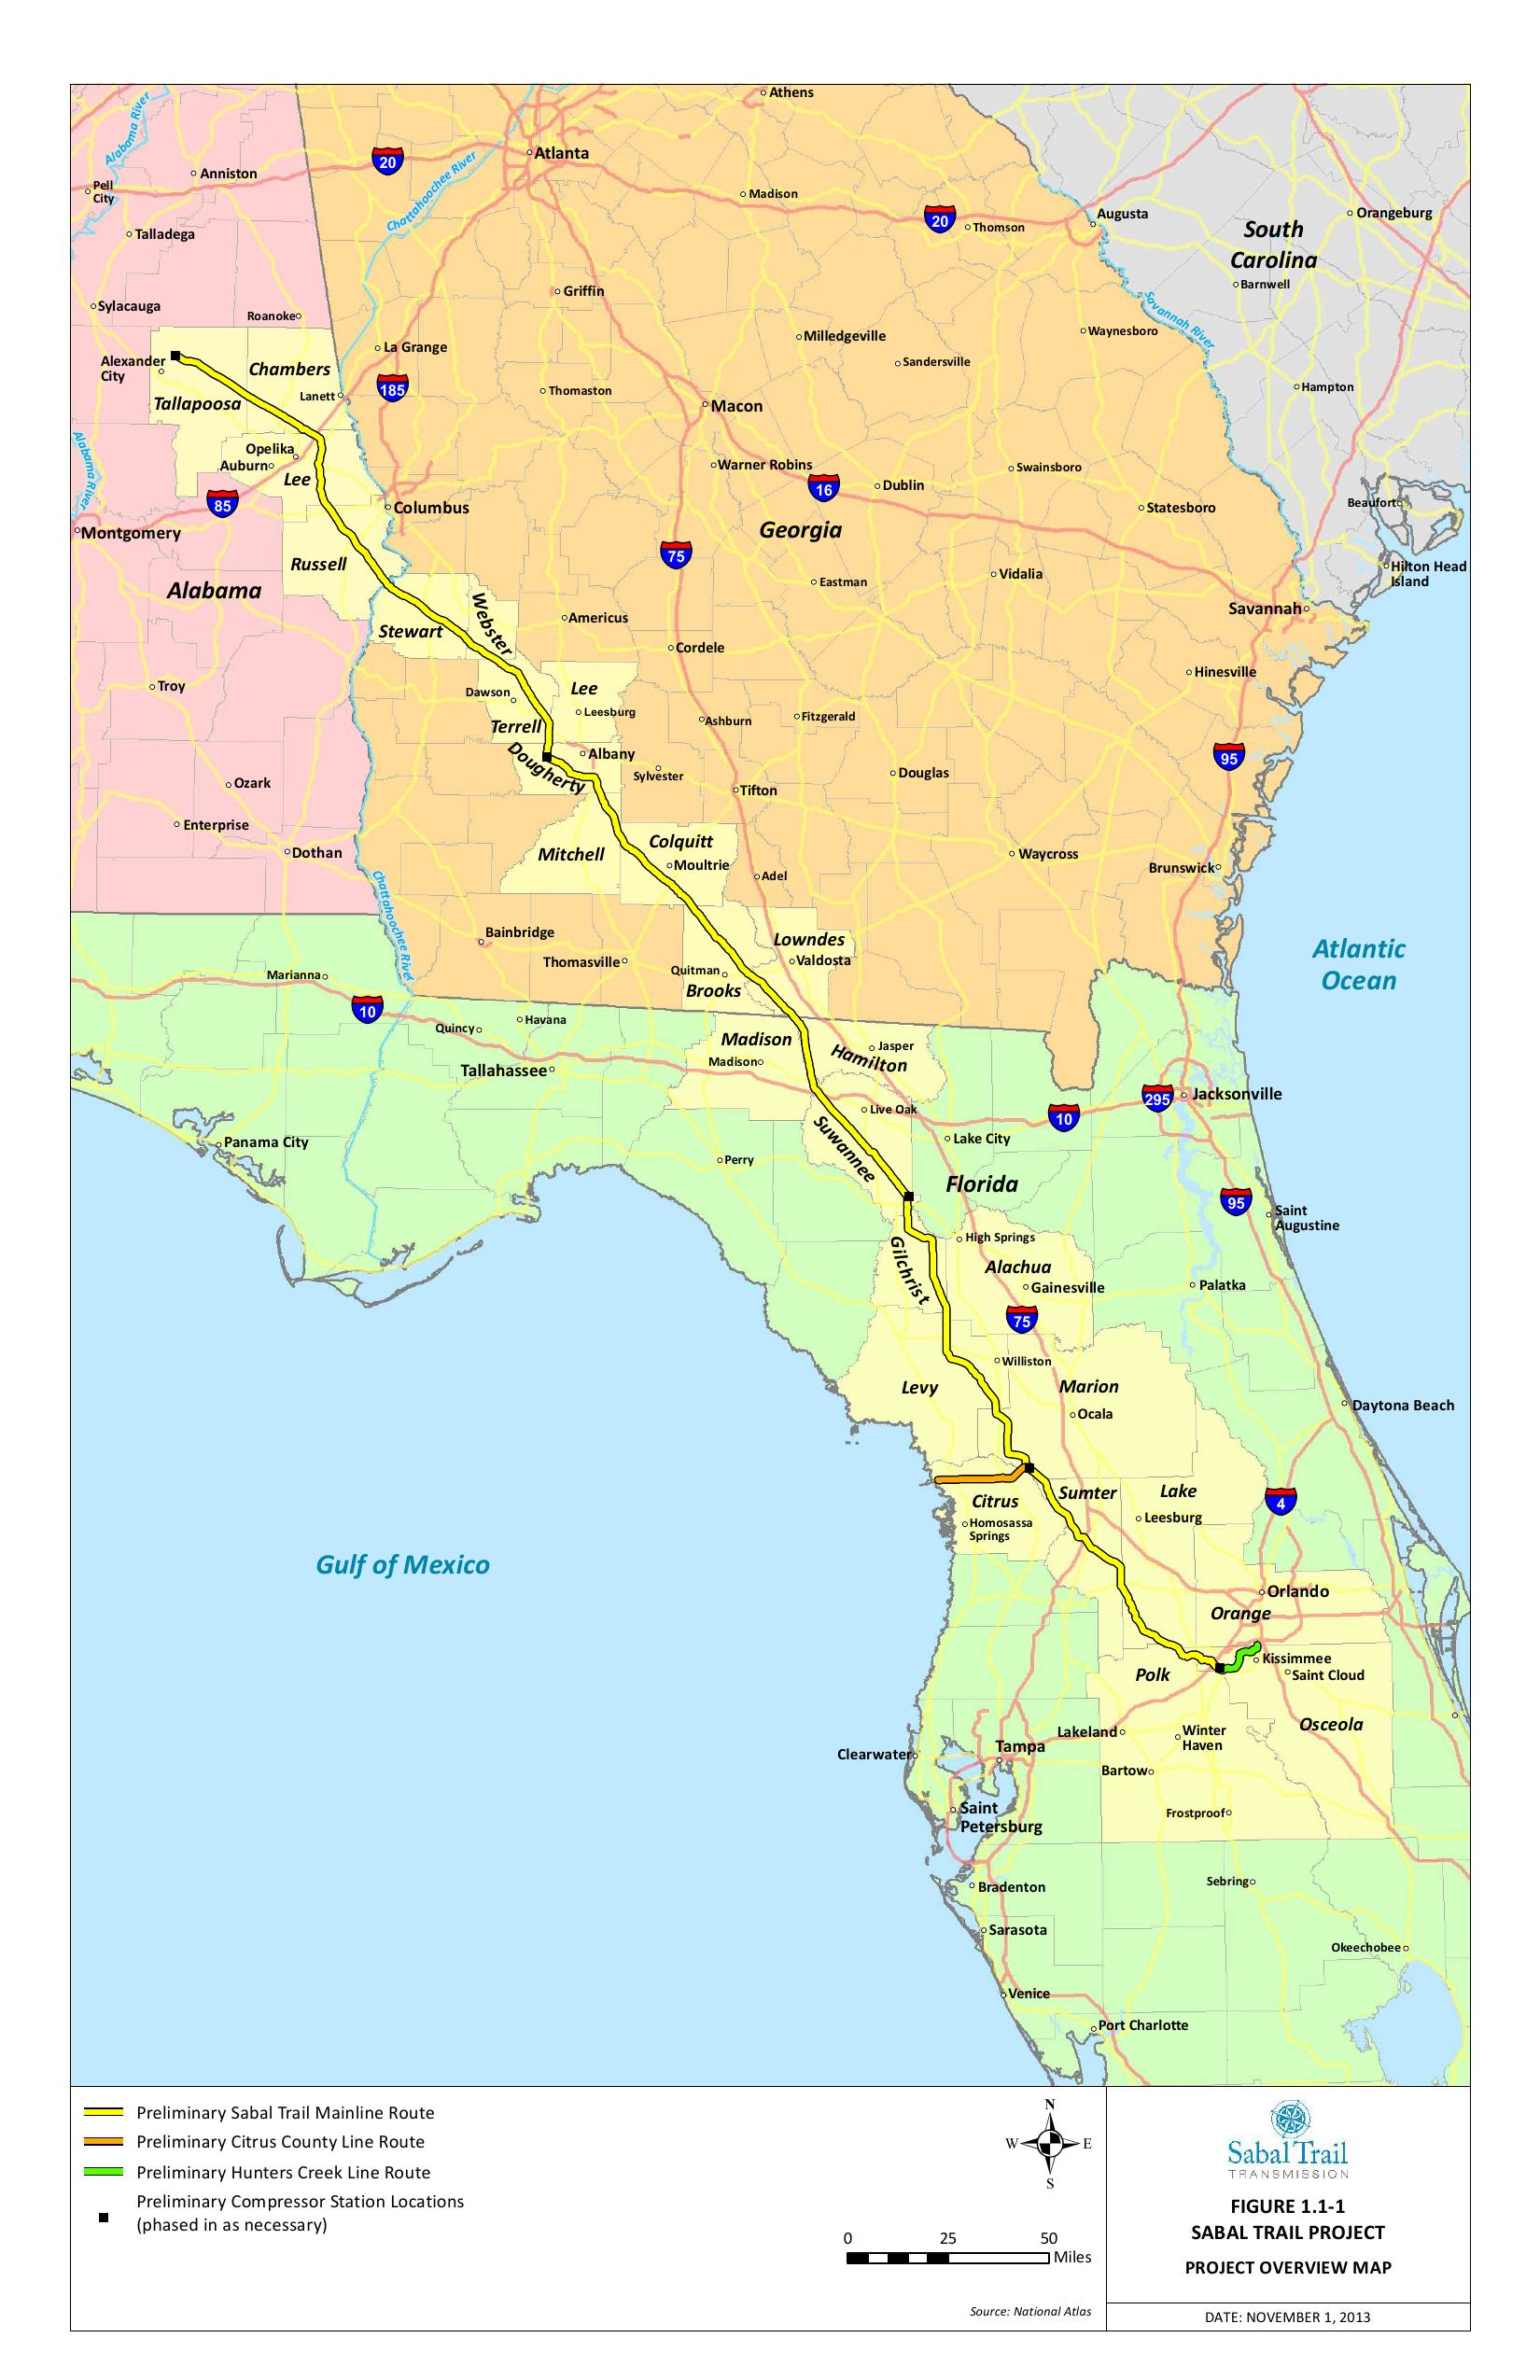 Detailed project overview map from Sabal Trail | SpectraBusters